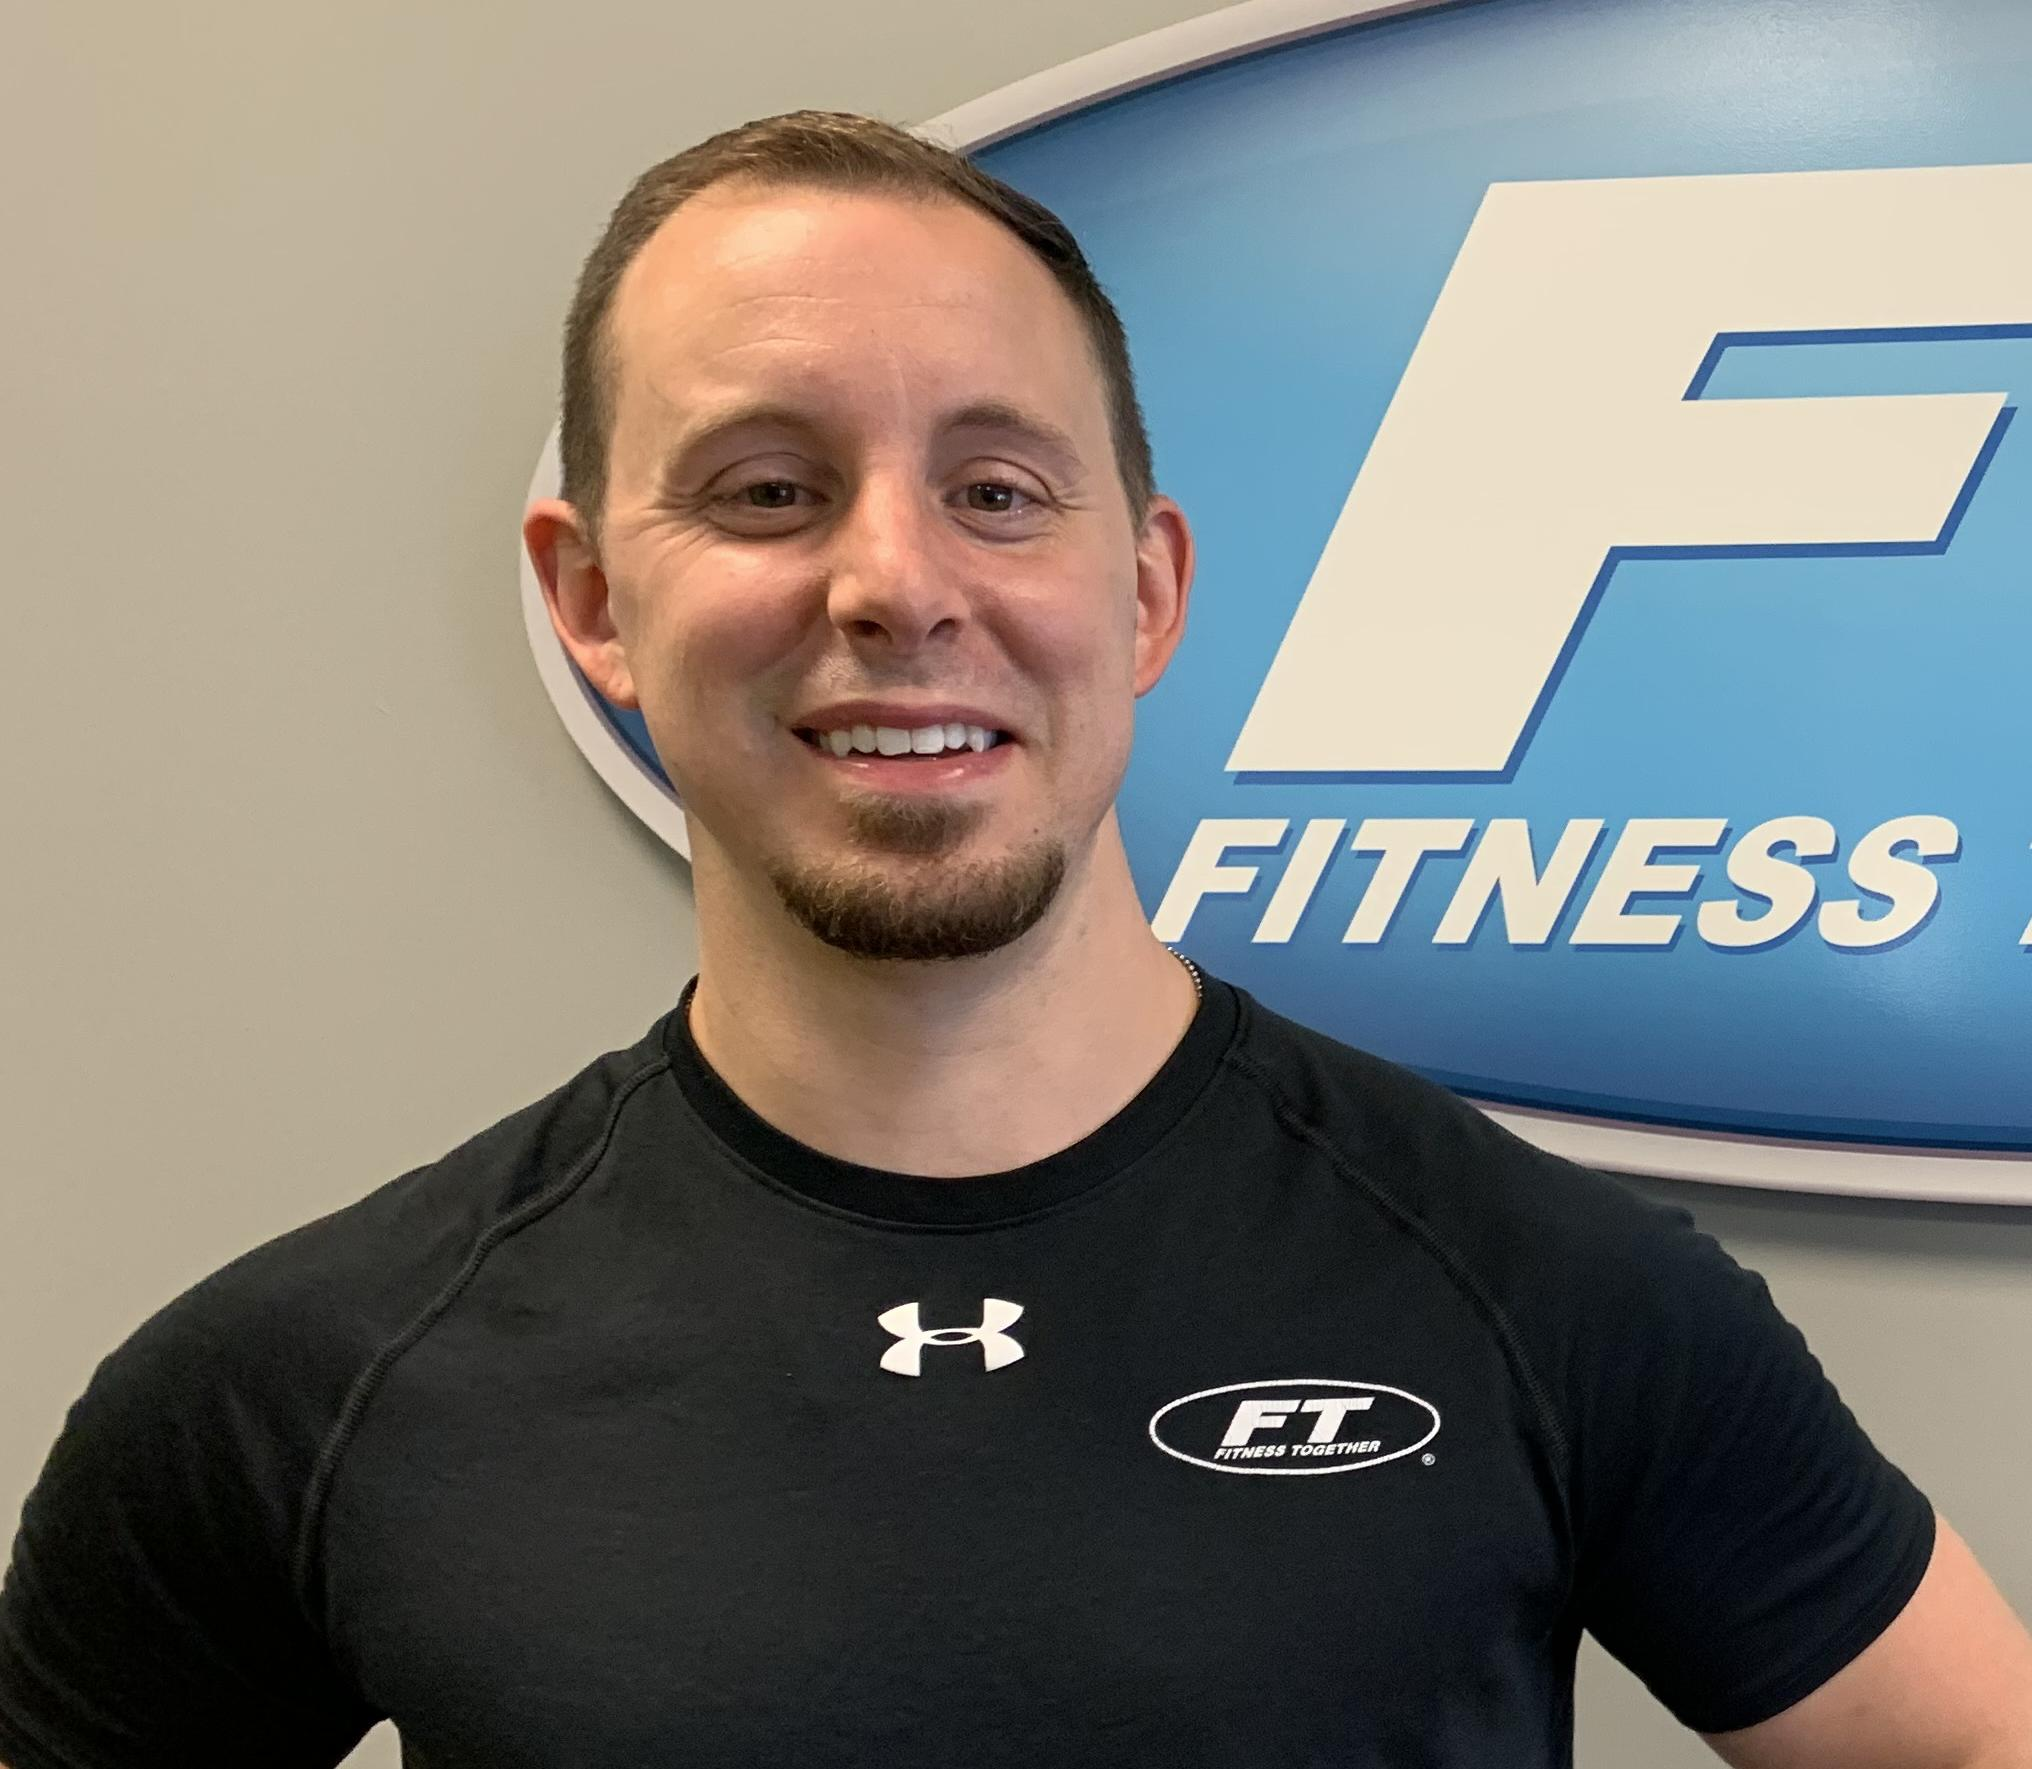 fitness together Newtonville owners